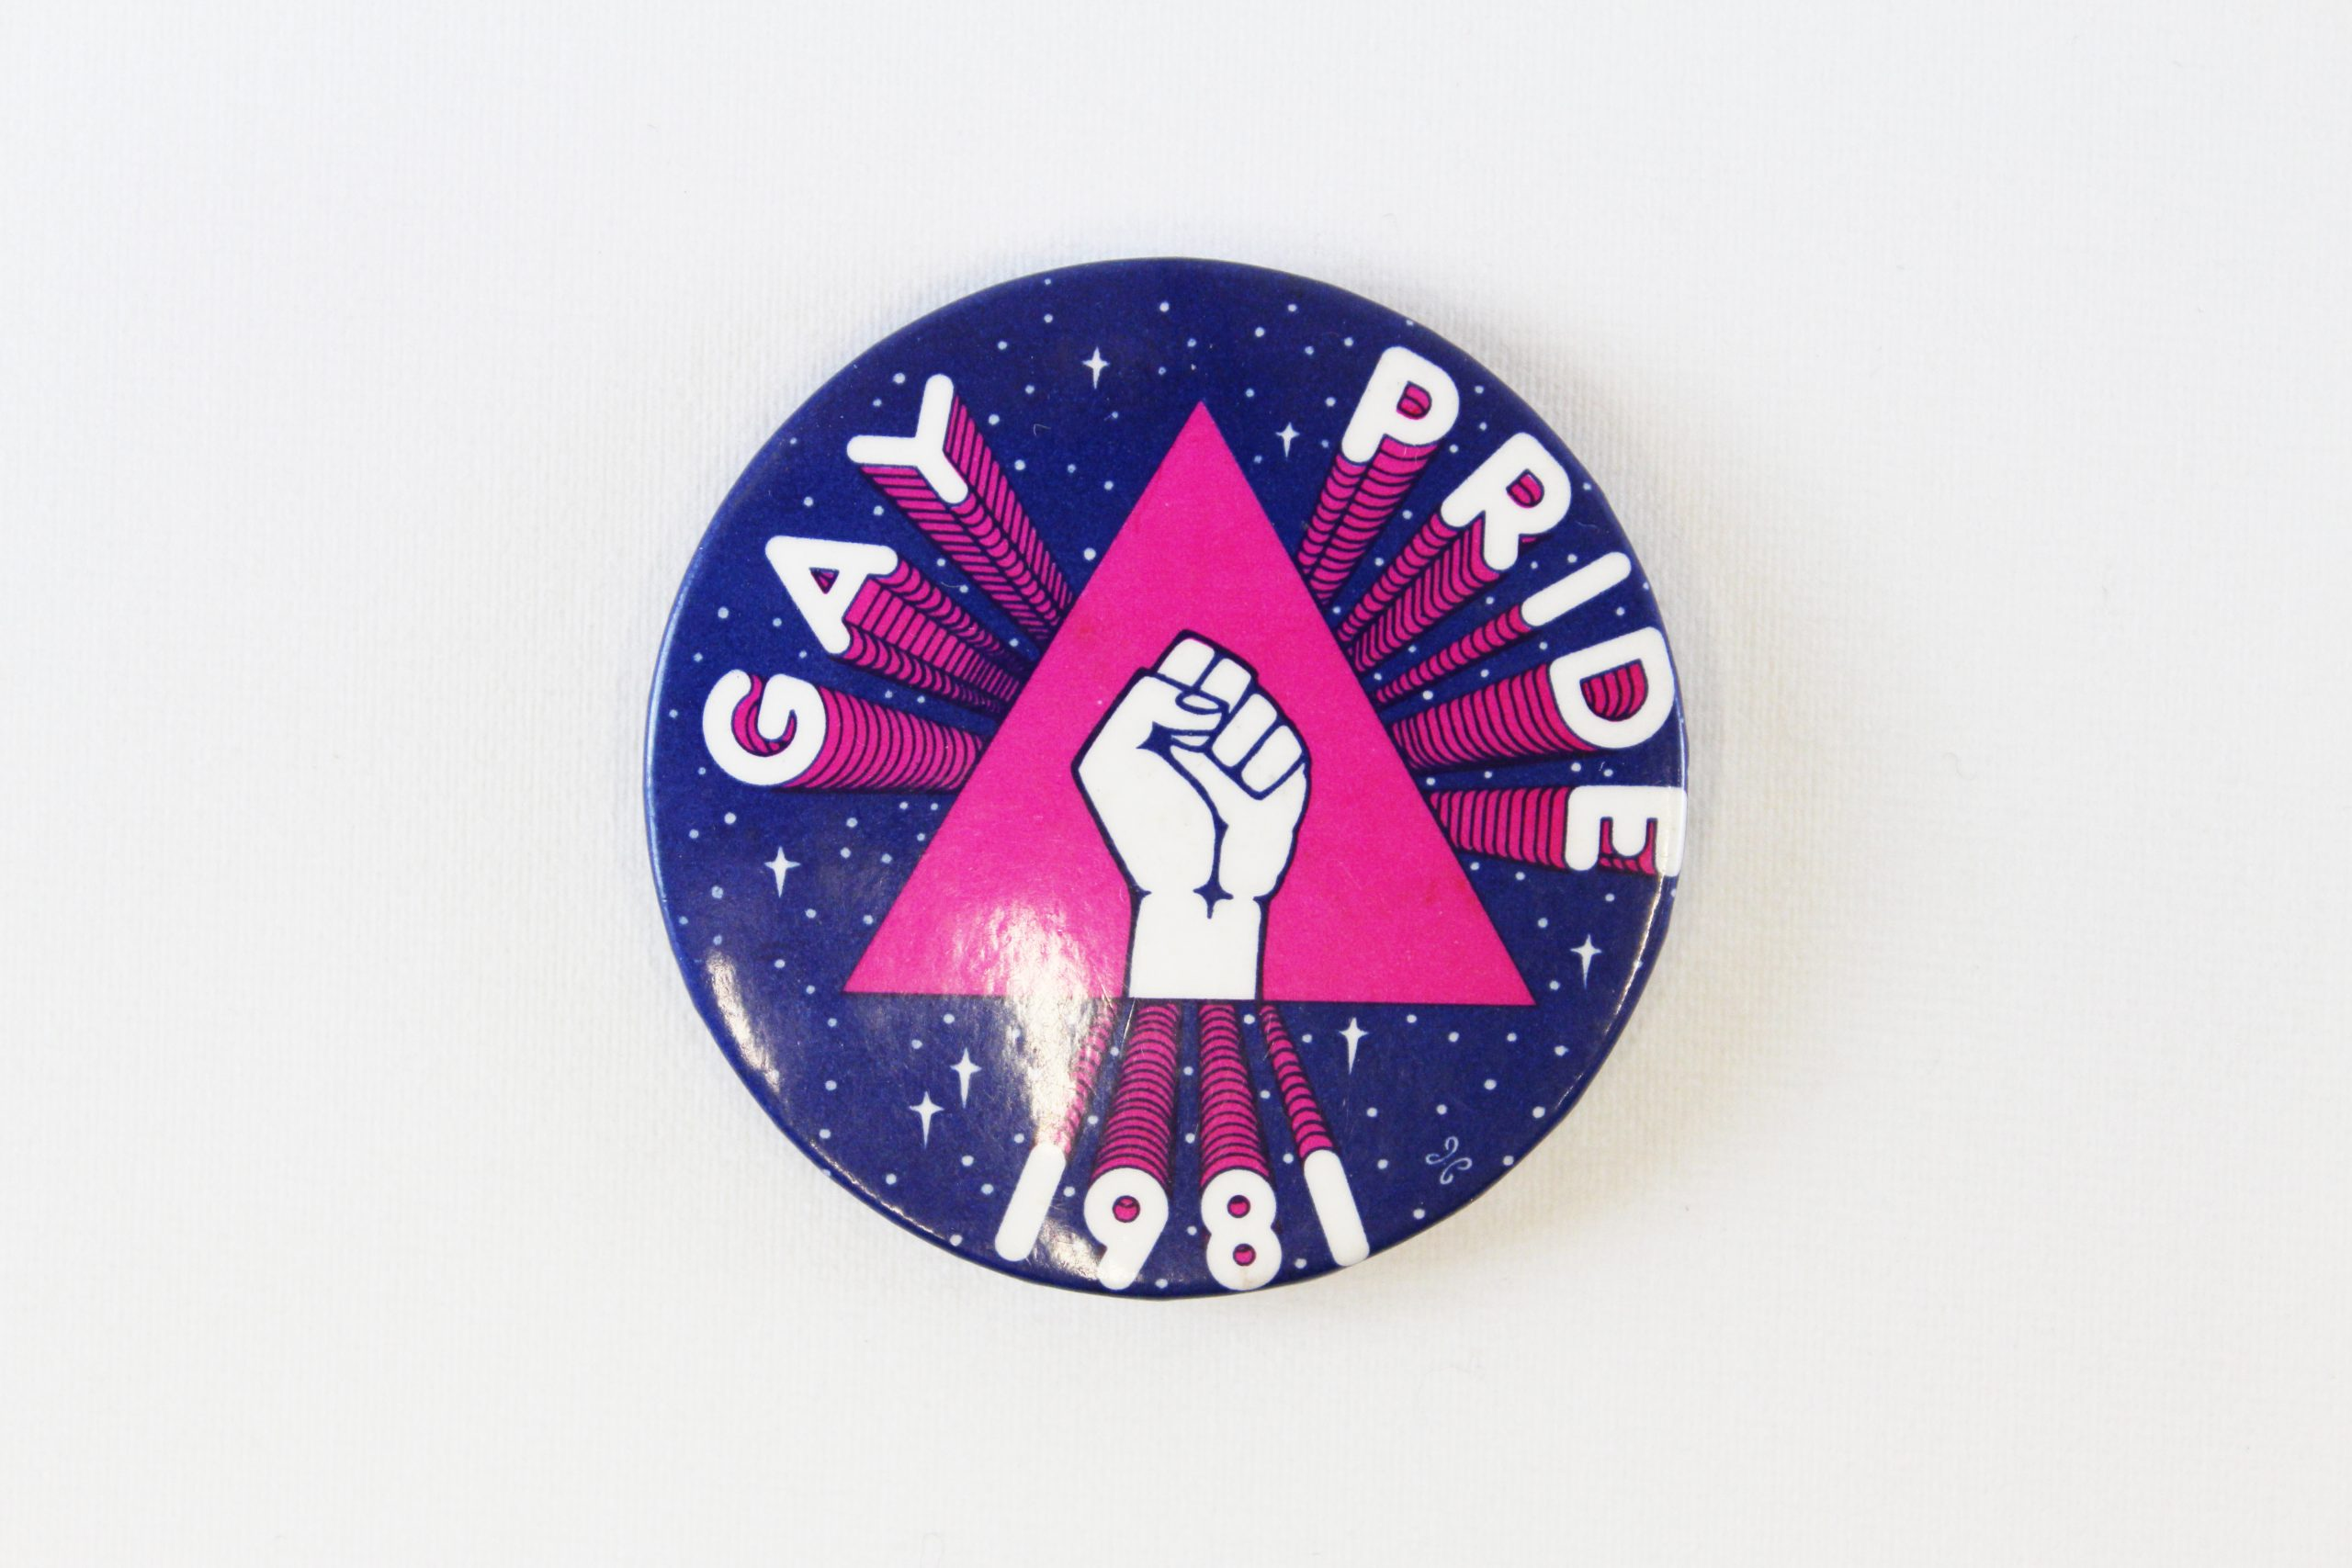 Gay Pride badge, 1981 with raised fist motif in centre. From the collection of People's History Museum